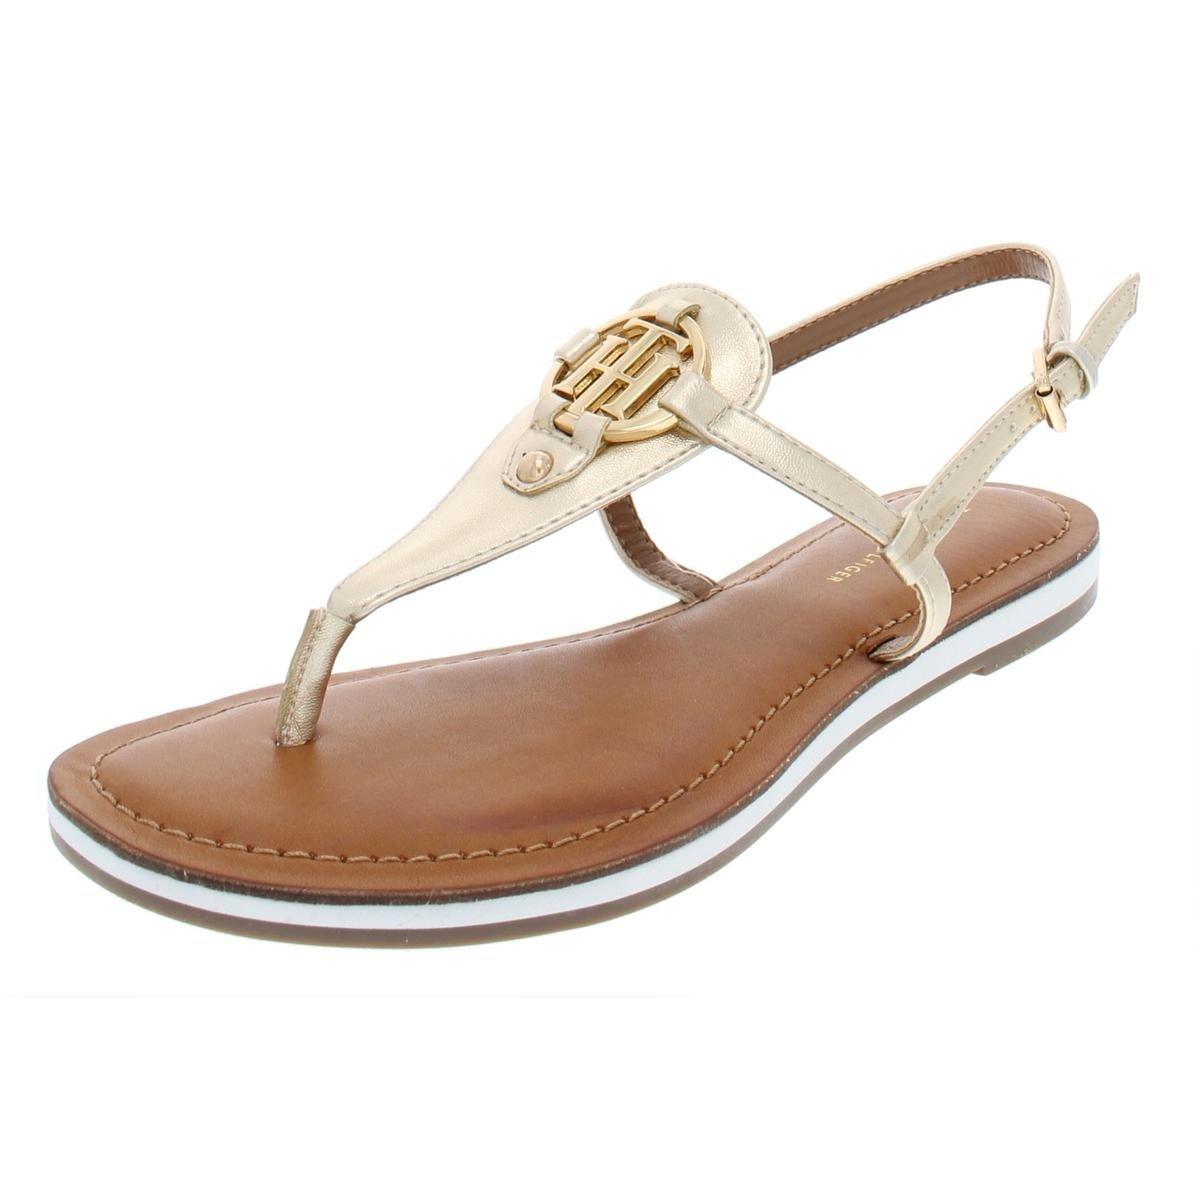 582b2101864a Shop Tommy Hilfiger Womens Genei Thong Sandals Metallic T-Strap - Free  Shipping On Orders Over  45 - Overstock - 27615864